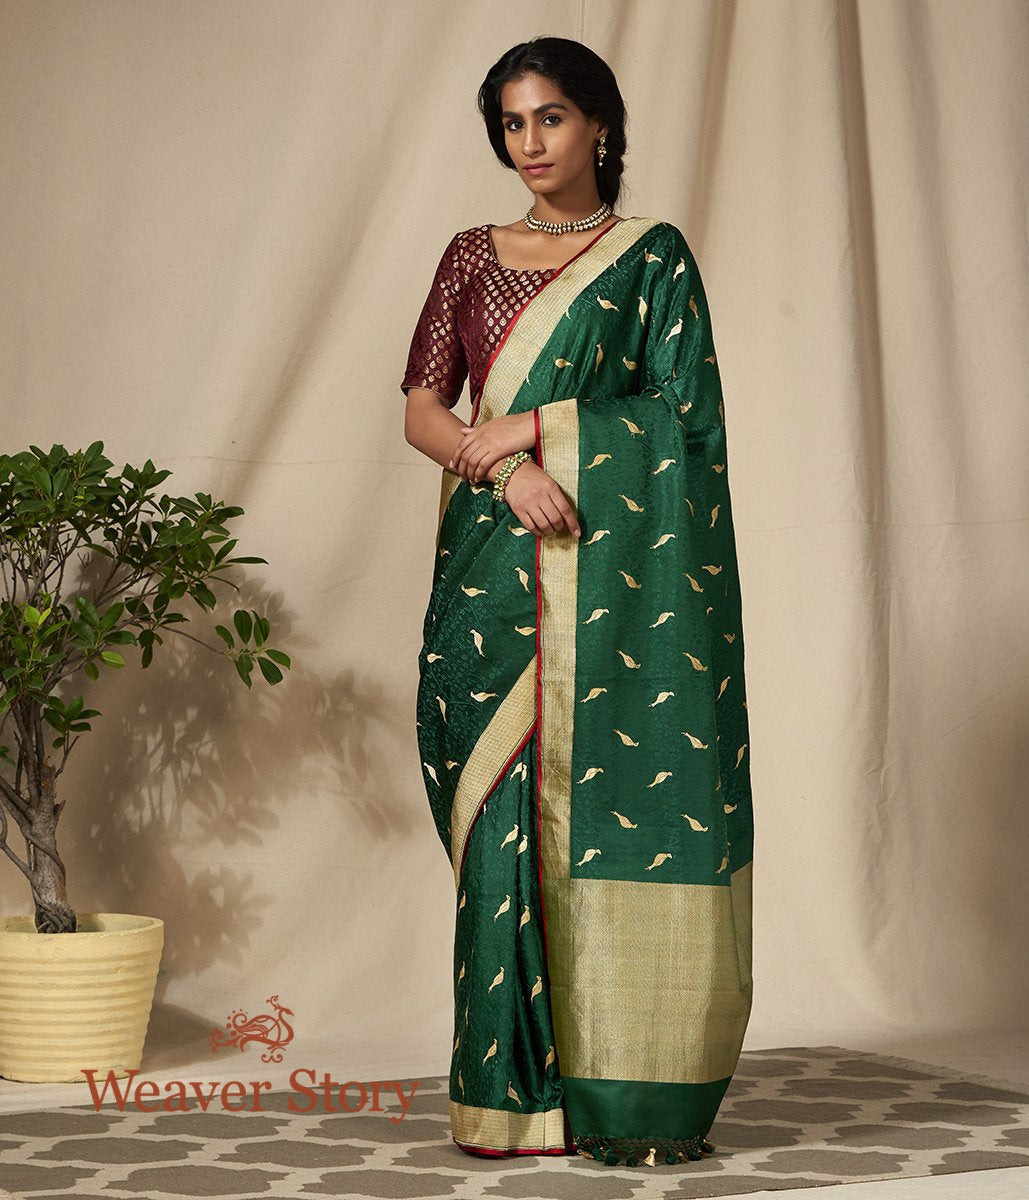 Handwoven Emerald Green Tanchoi Saree with Woven Birds Motifs